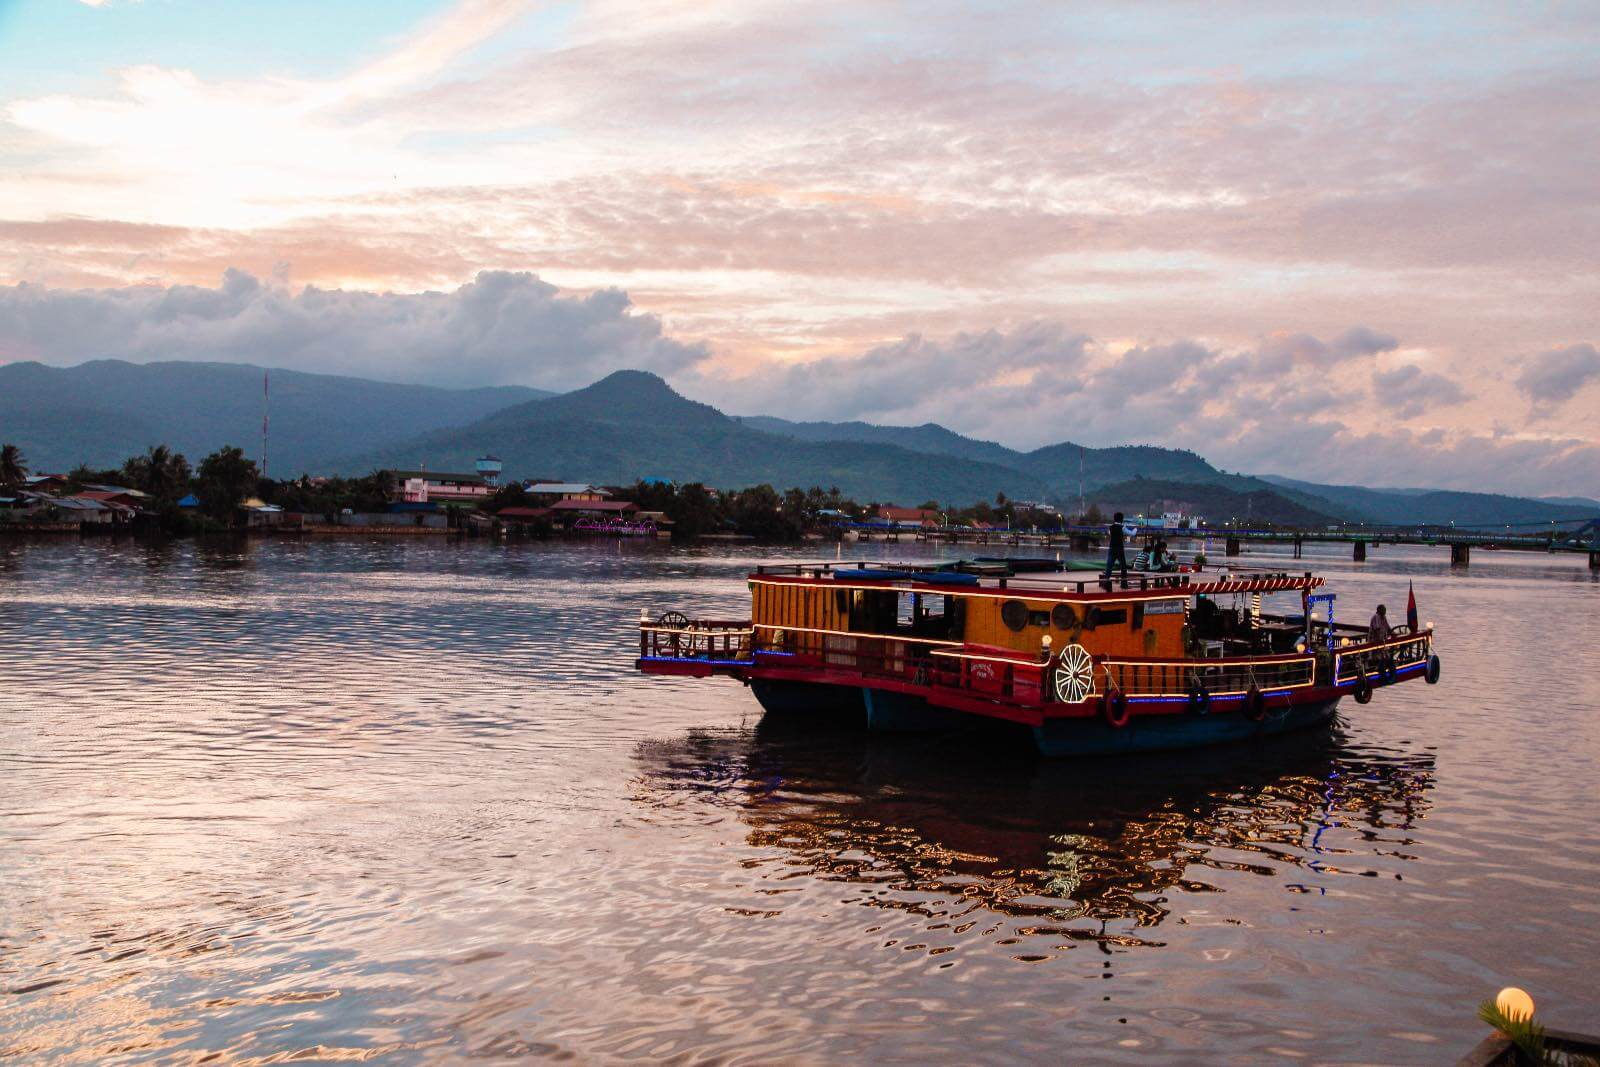 Boat floating on the Kampot river at sunset